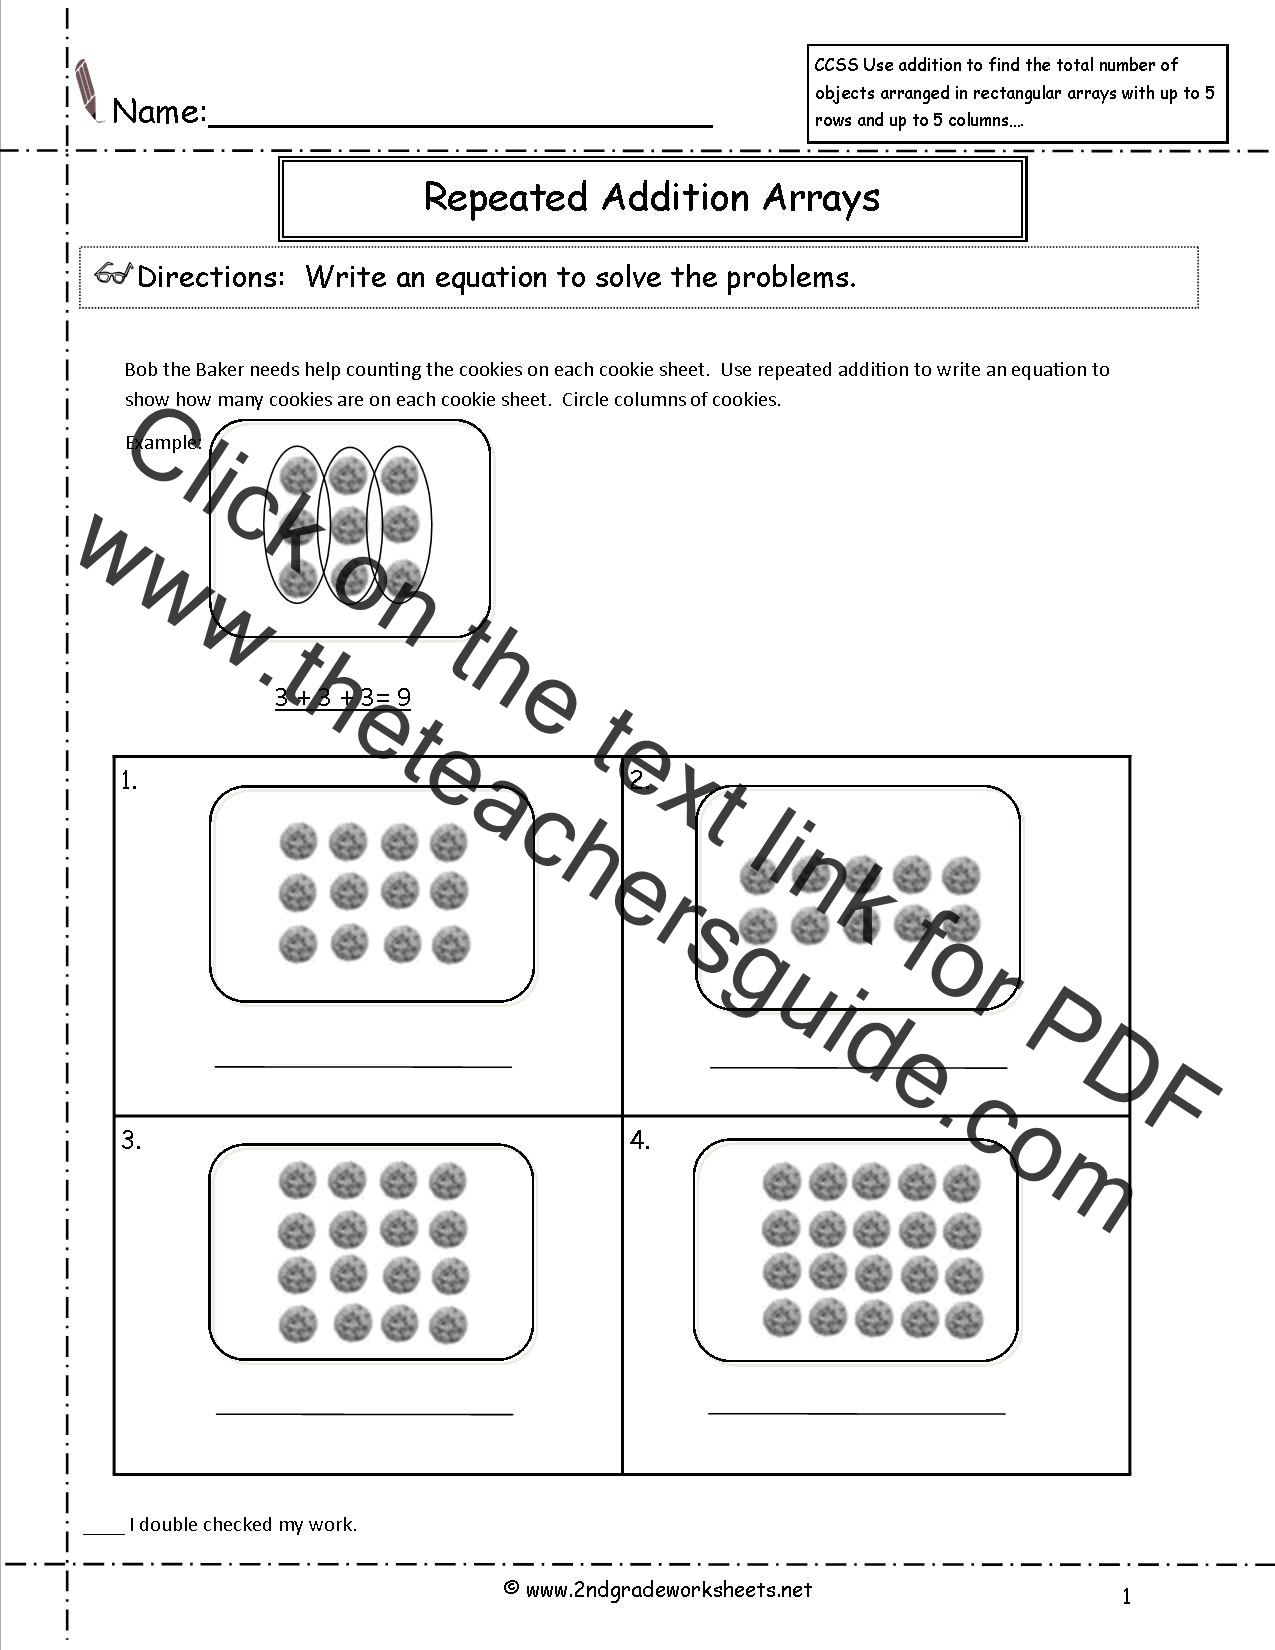 math worksheet : 2nd grade math common core state standards worksheets : Free Worksheets For 2nd Grade Math